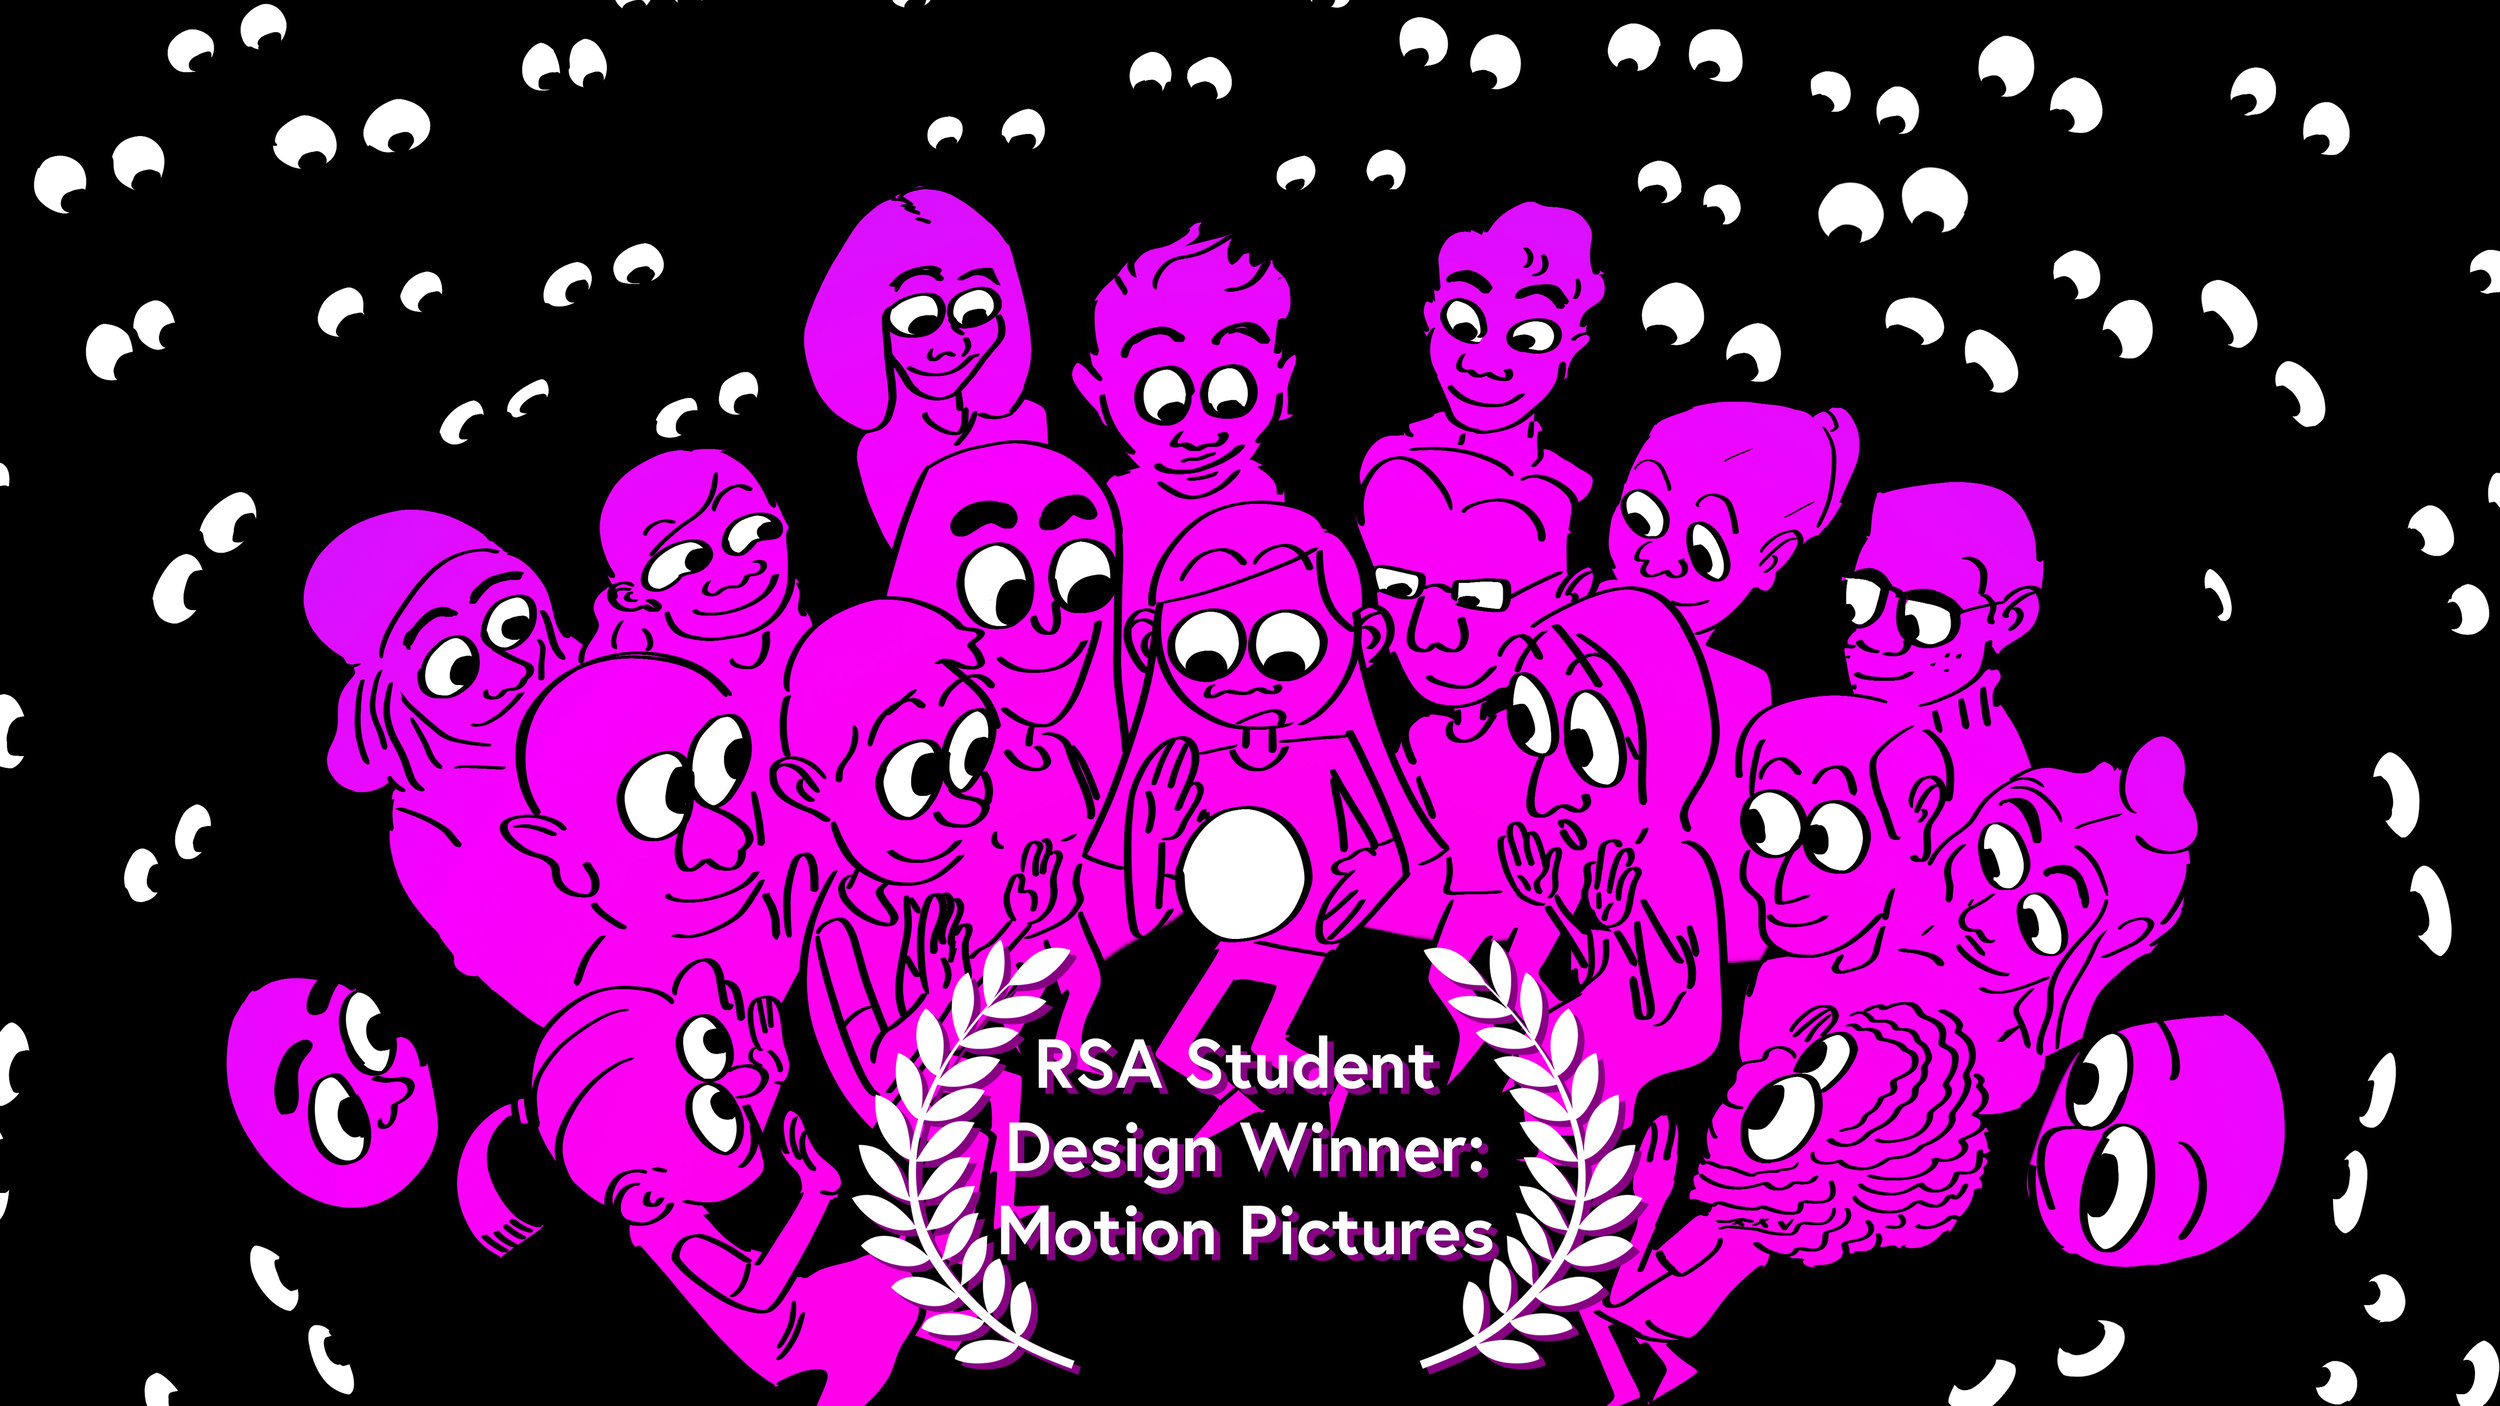 The Future is in Your Hands Now (2019) - Role: Director, Producer, Storyboard Artist, Editor, Art Director, Layout, 2D Animator, and Compositor.RSA Student Design Competition 2019 Winning Entry